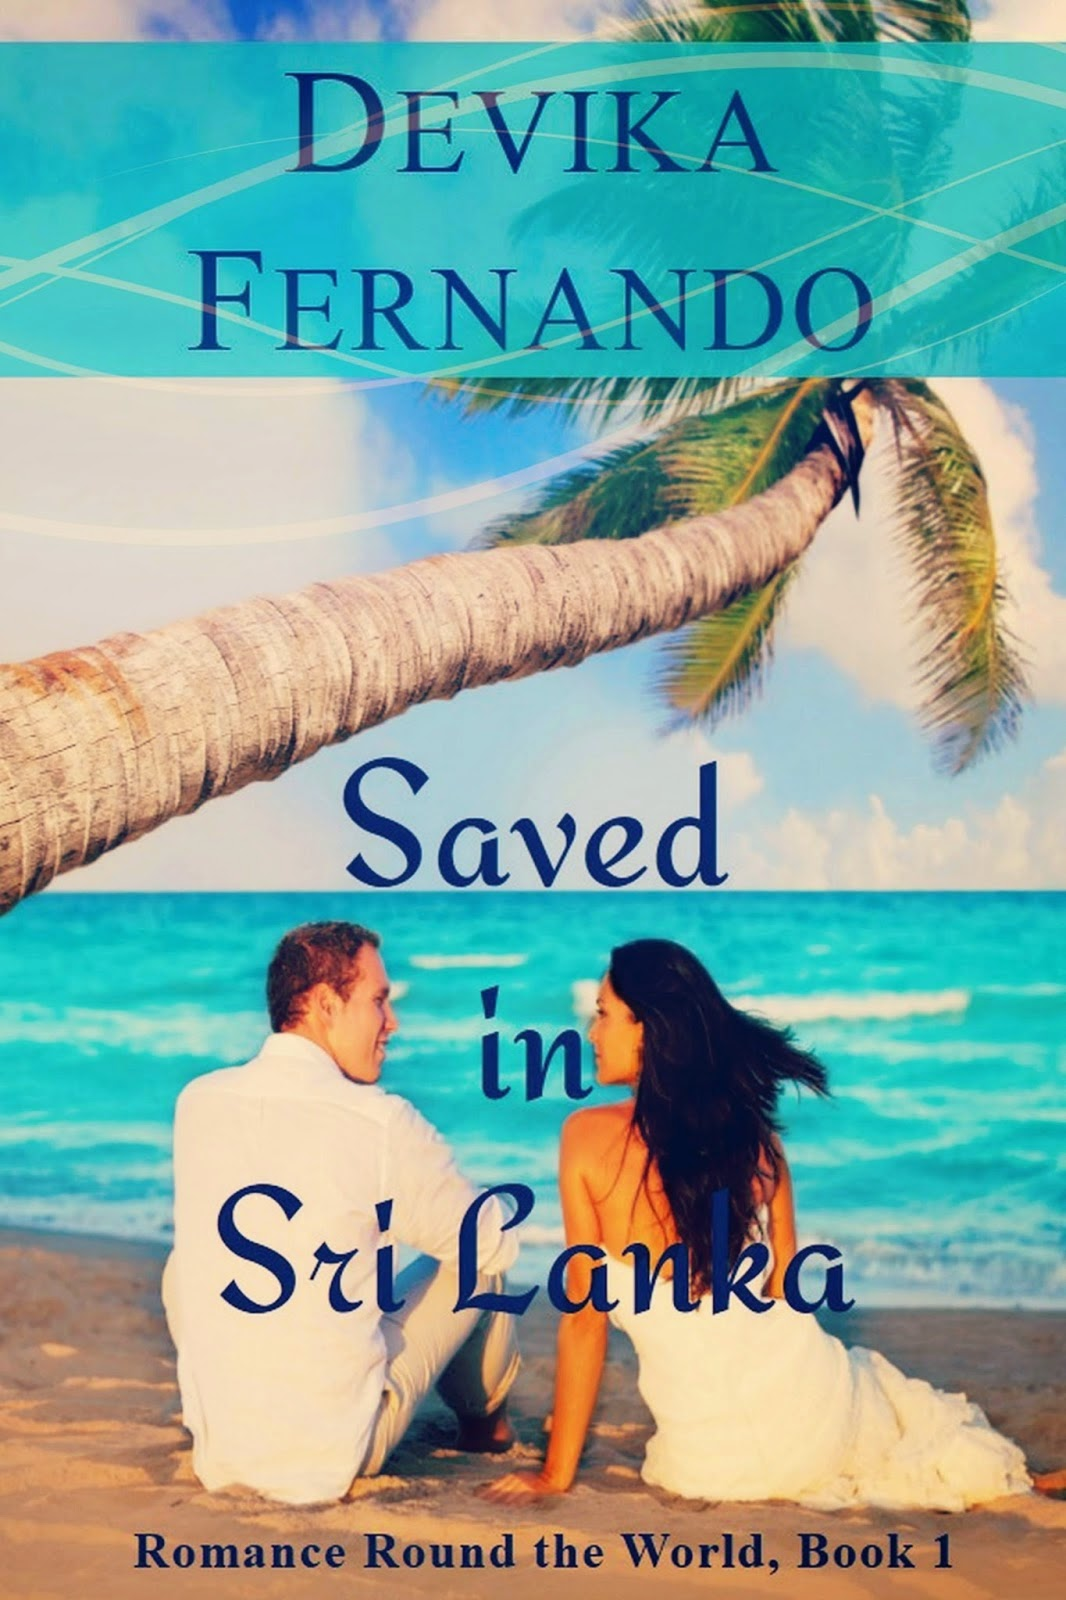 #BookReview: Saved in Sri Lanka by Devika Fernando